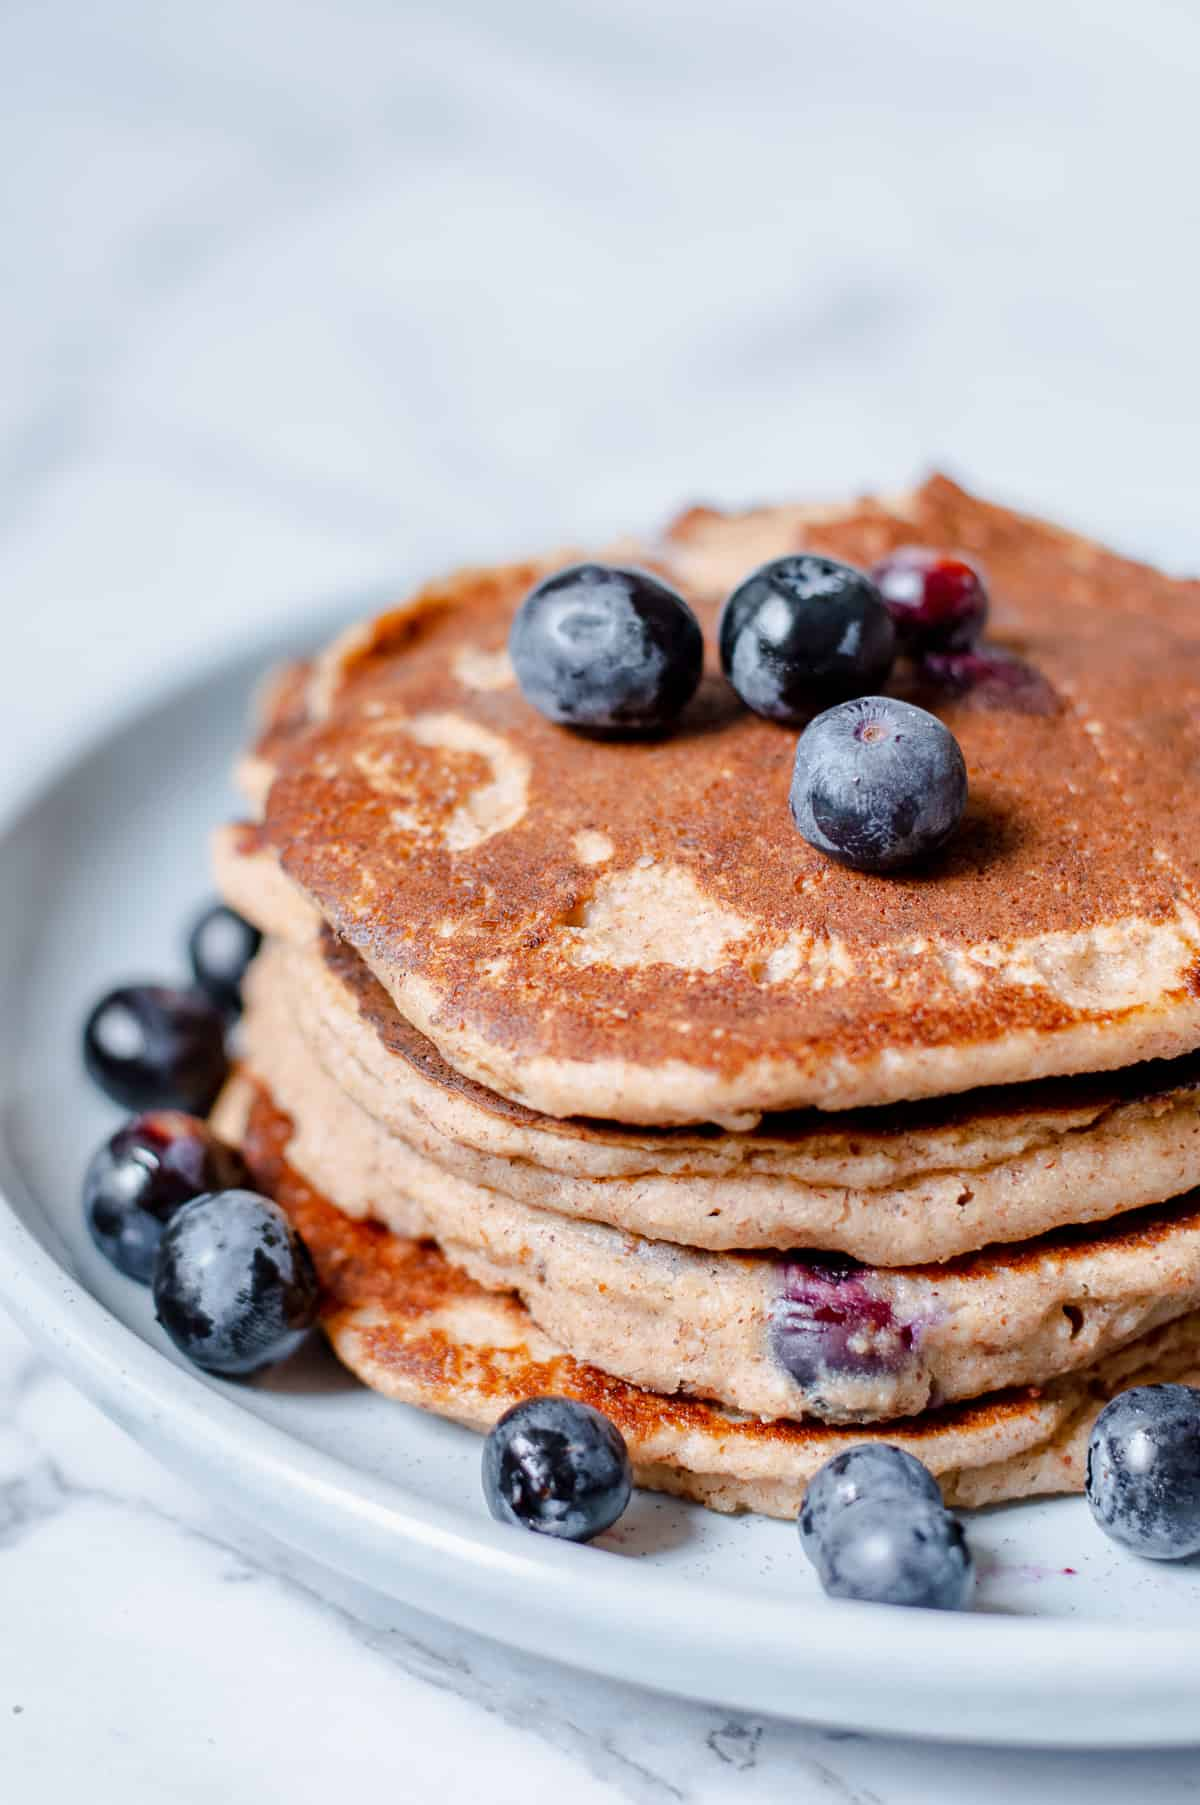 Pancakes with Blueberries on blue plate